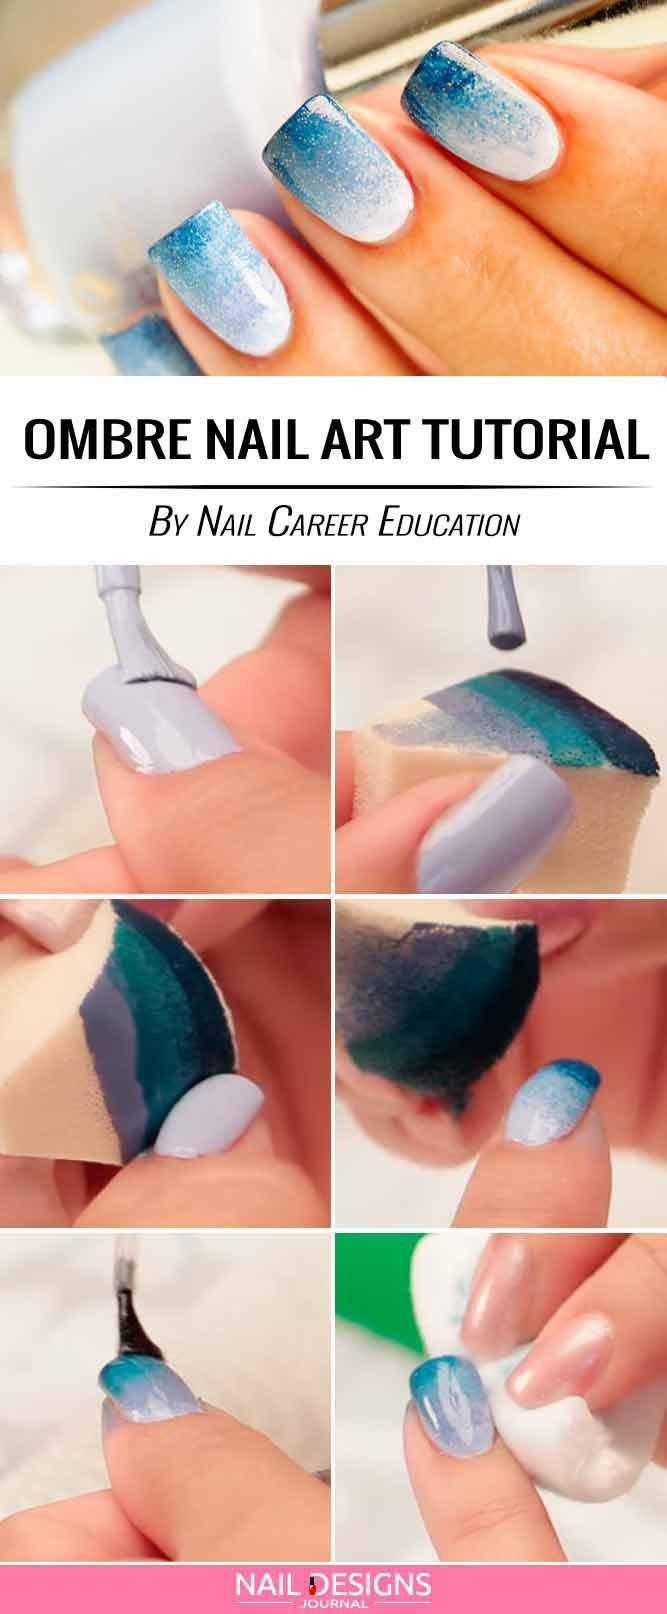 Best Ideas About Easy Nail Designs On Pinterest Diy Nails - Nail designs home